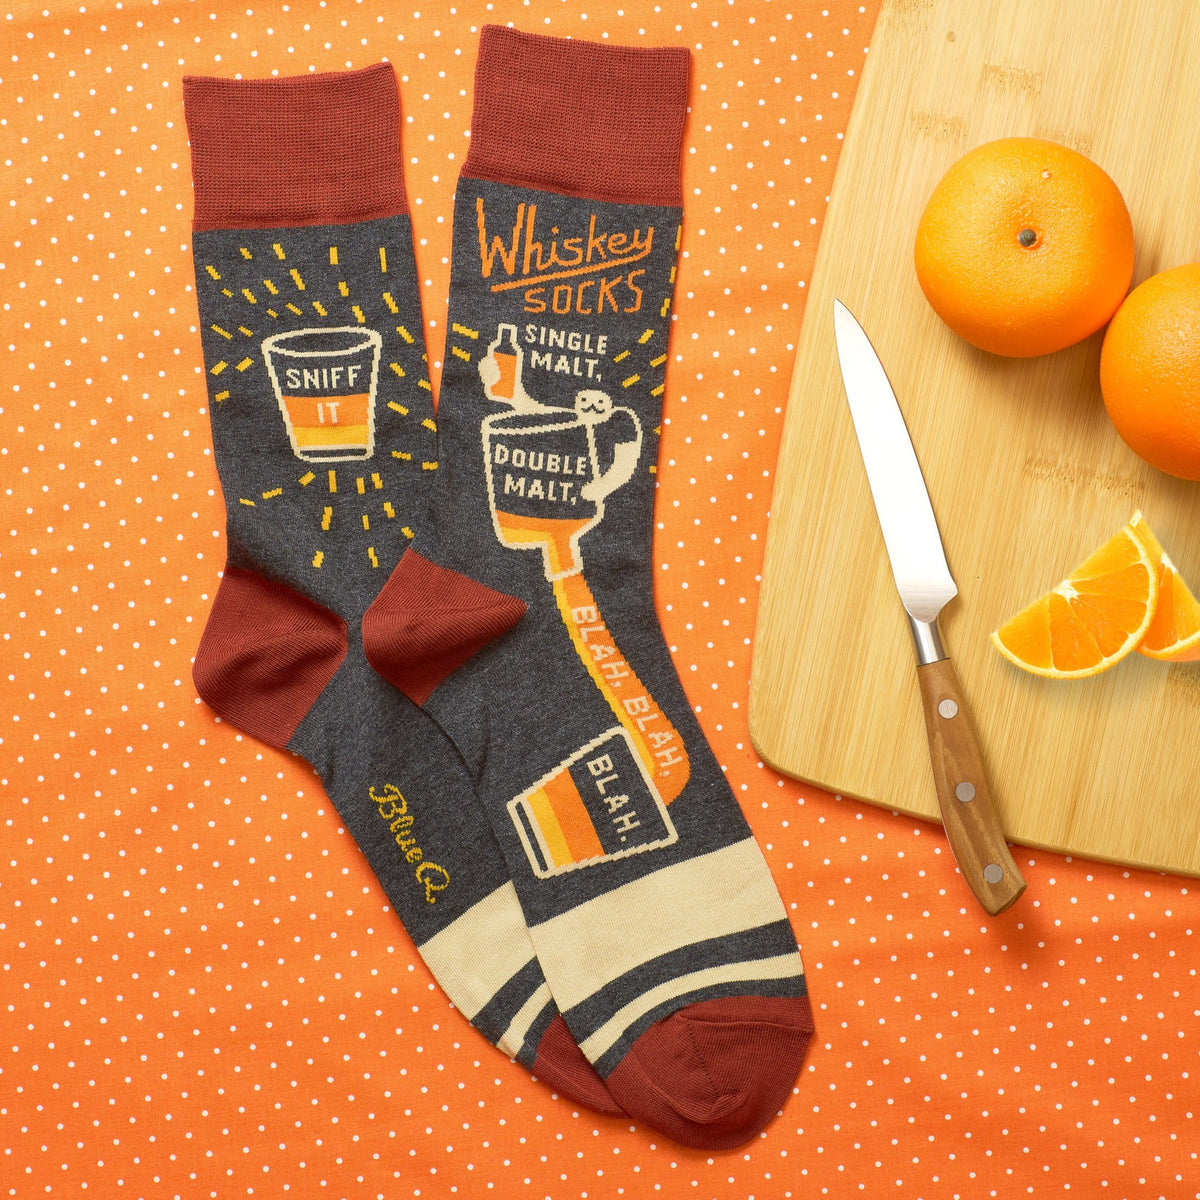 Whiskey Men's Crew Socks